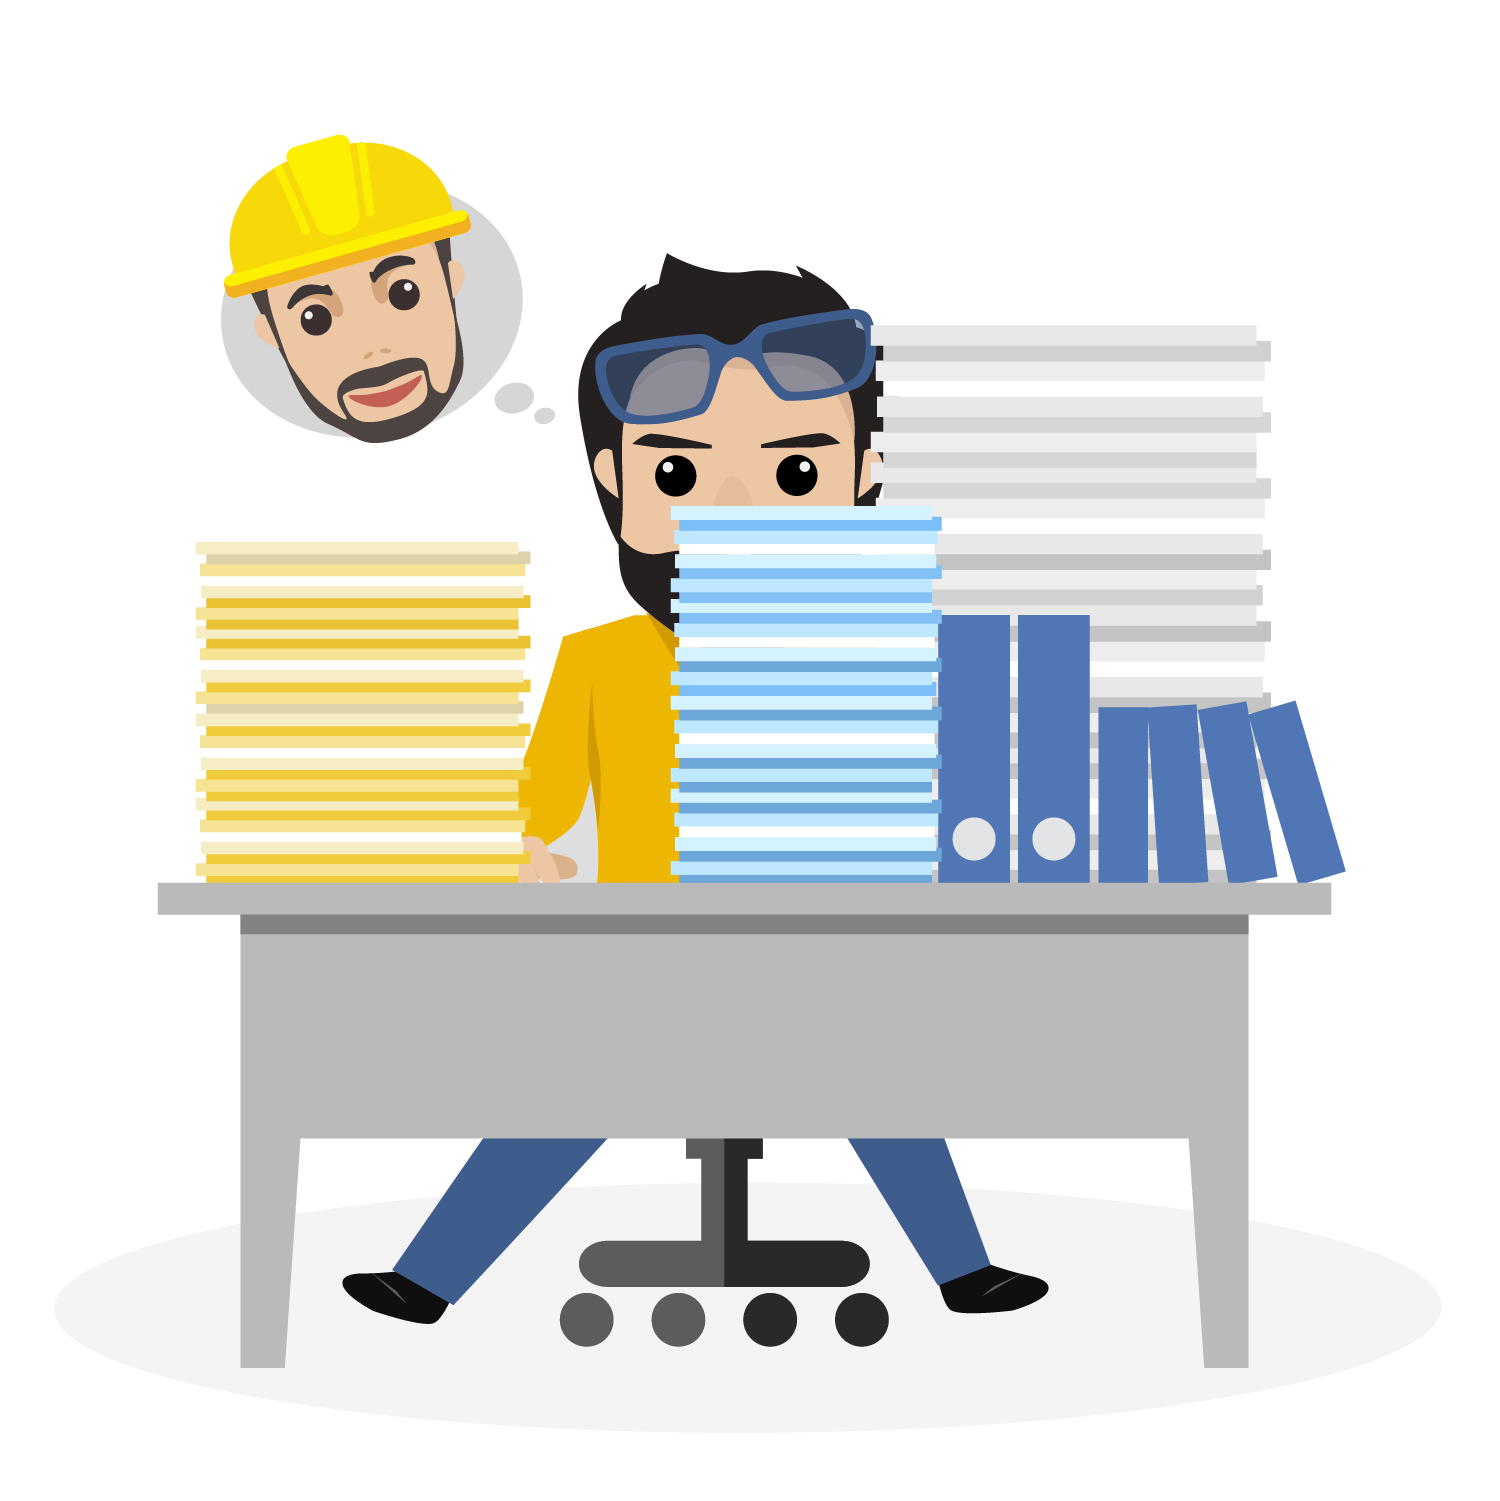 Desk clipart unfinished work. Your home improvement project